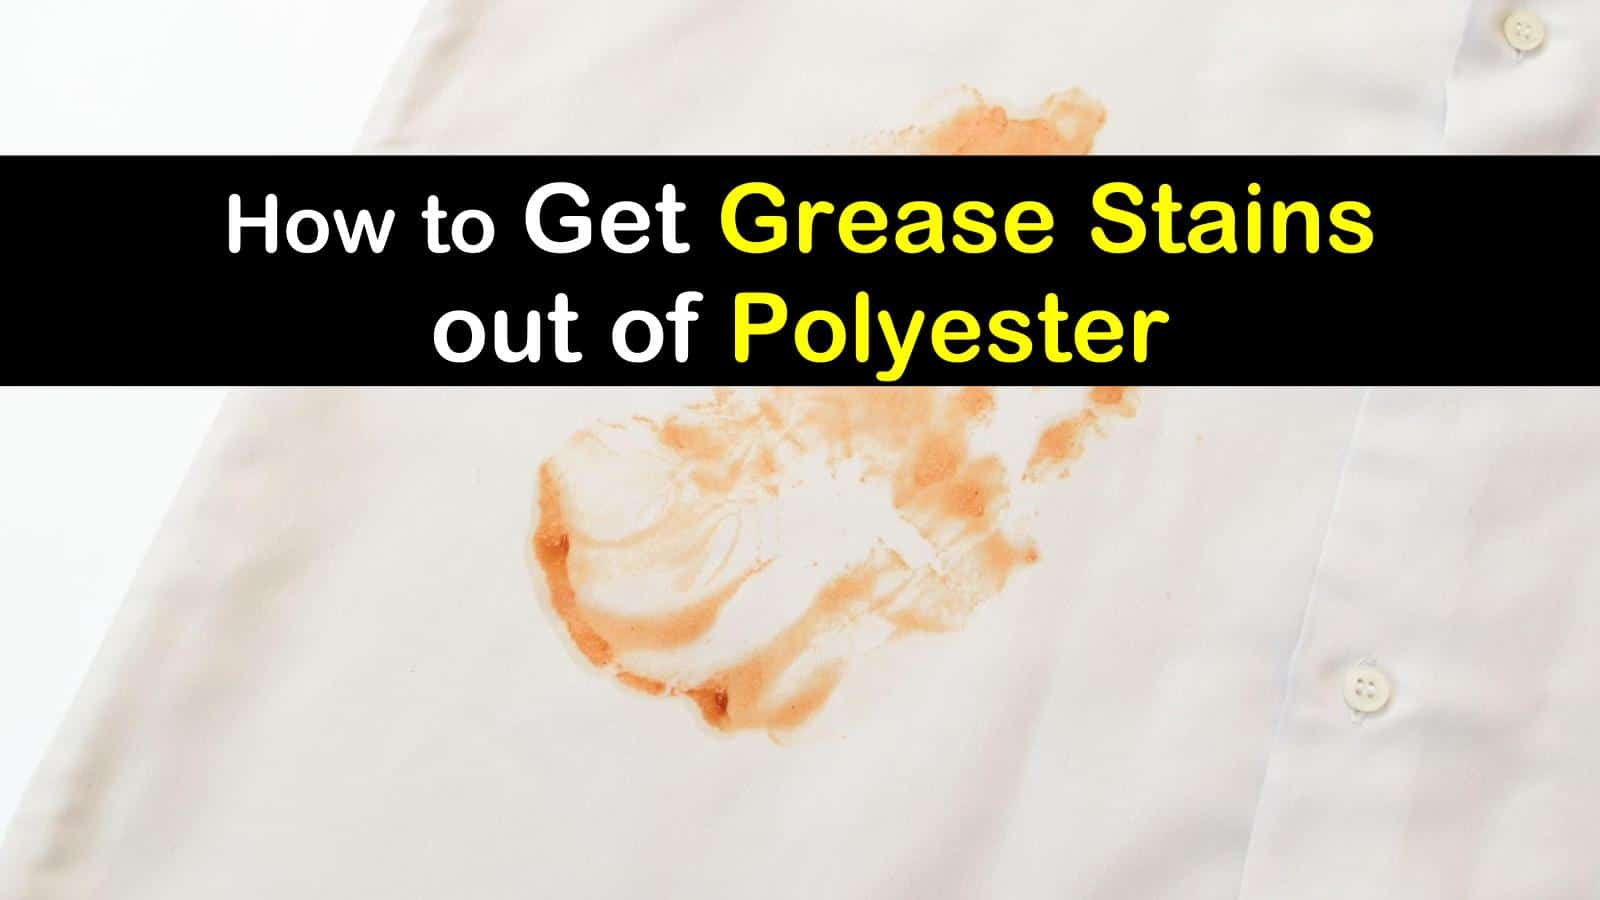 how to get grease stains out of polyester titleimg1